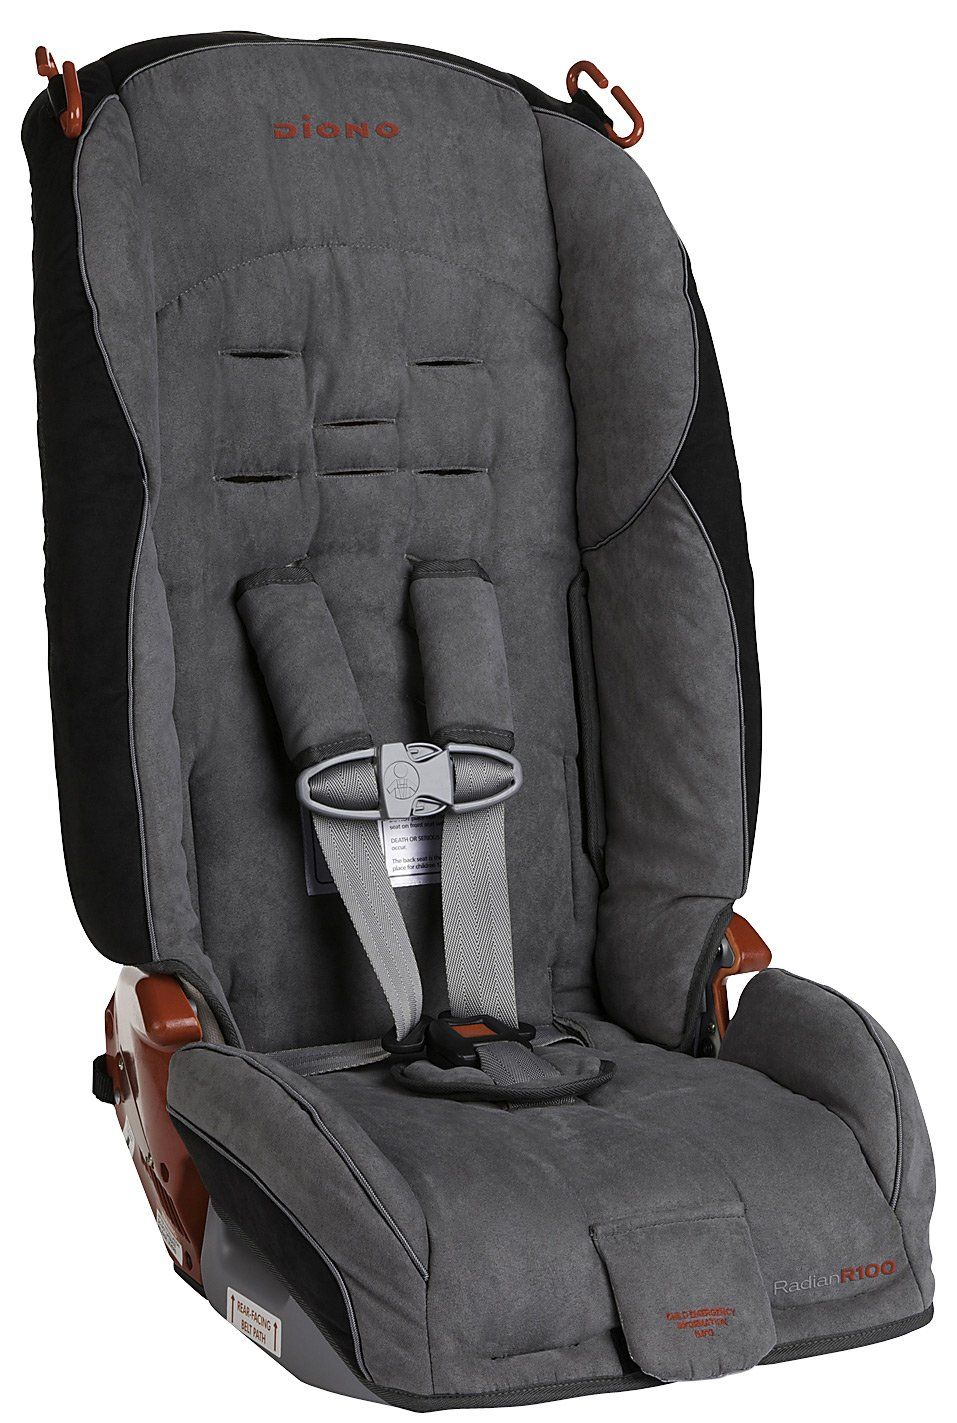 Diono Radian R100 Convertible+Booster Car Seat - Stone - time for ...